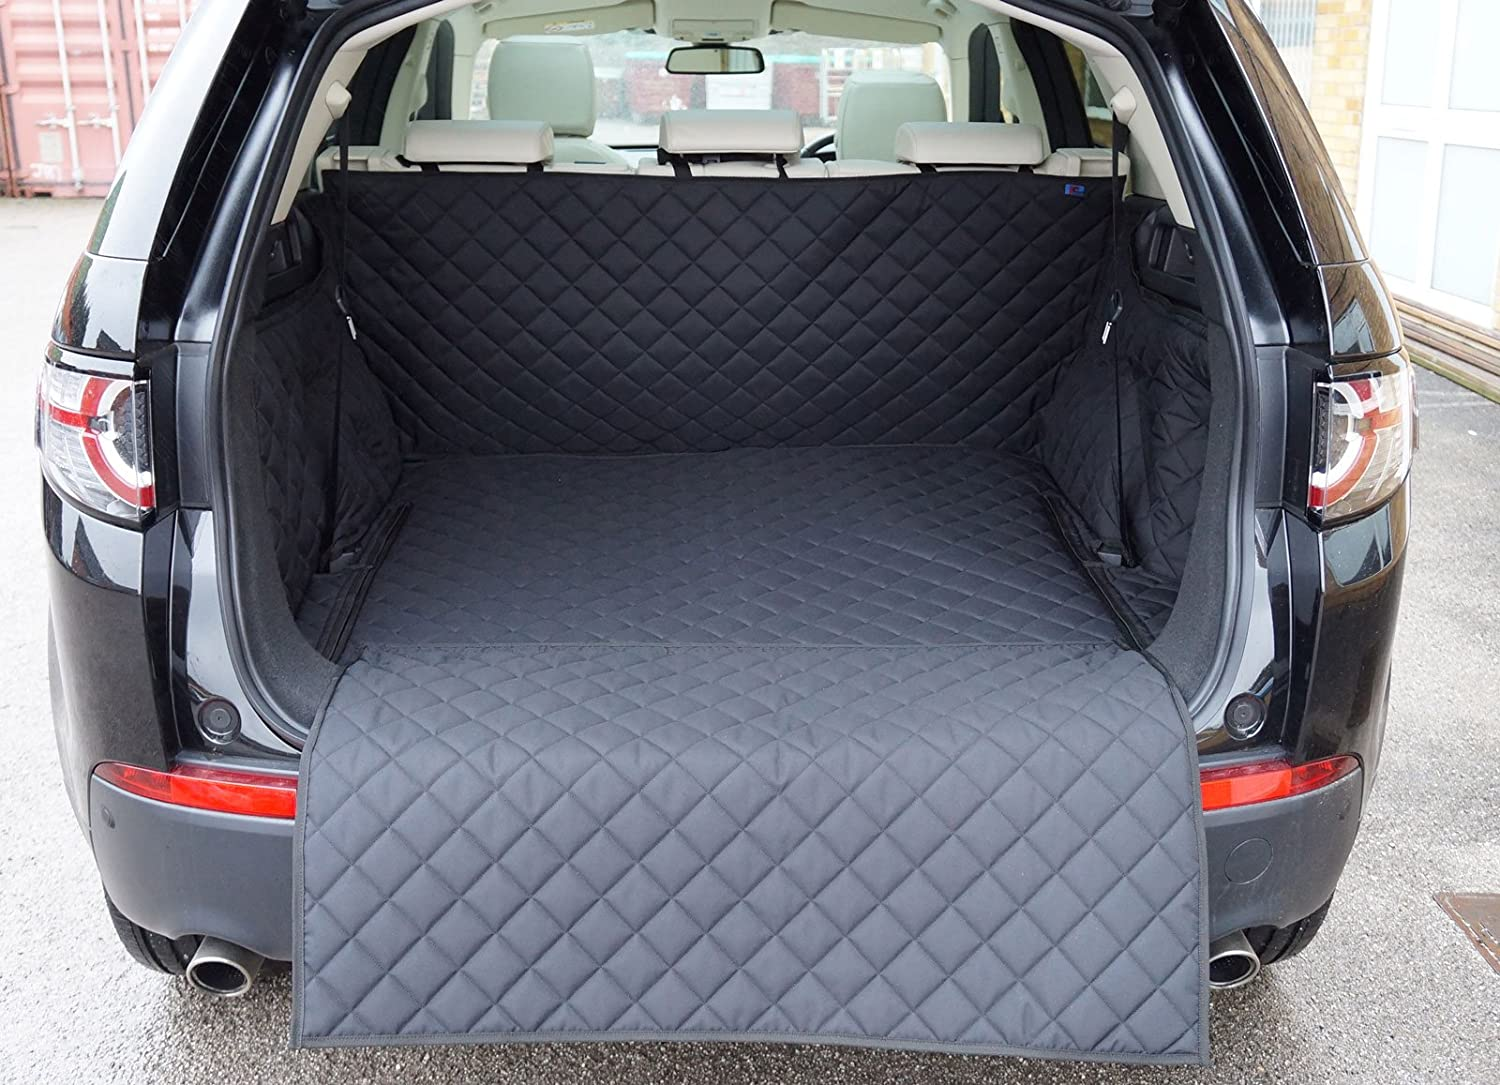 Premier products fully tailored quilted waterproof boot liner black amazon co uk car motorbike